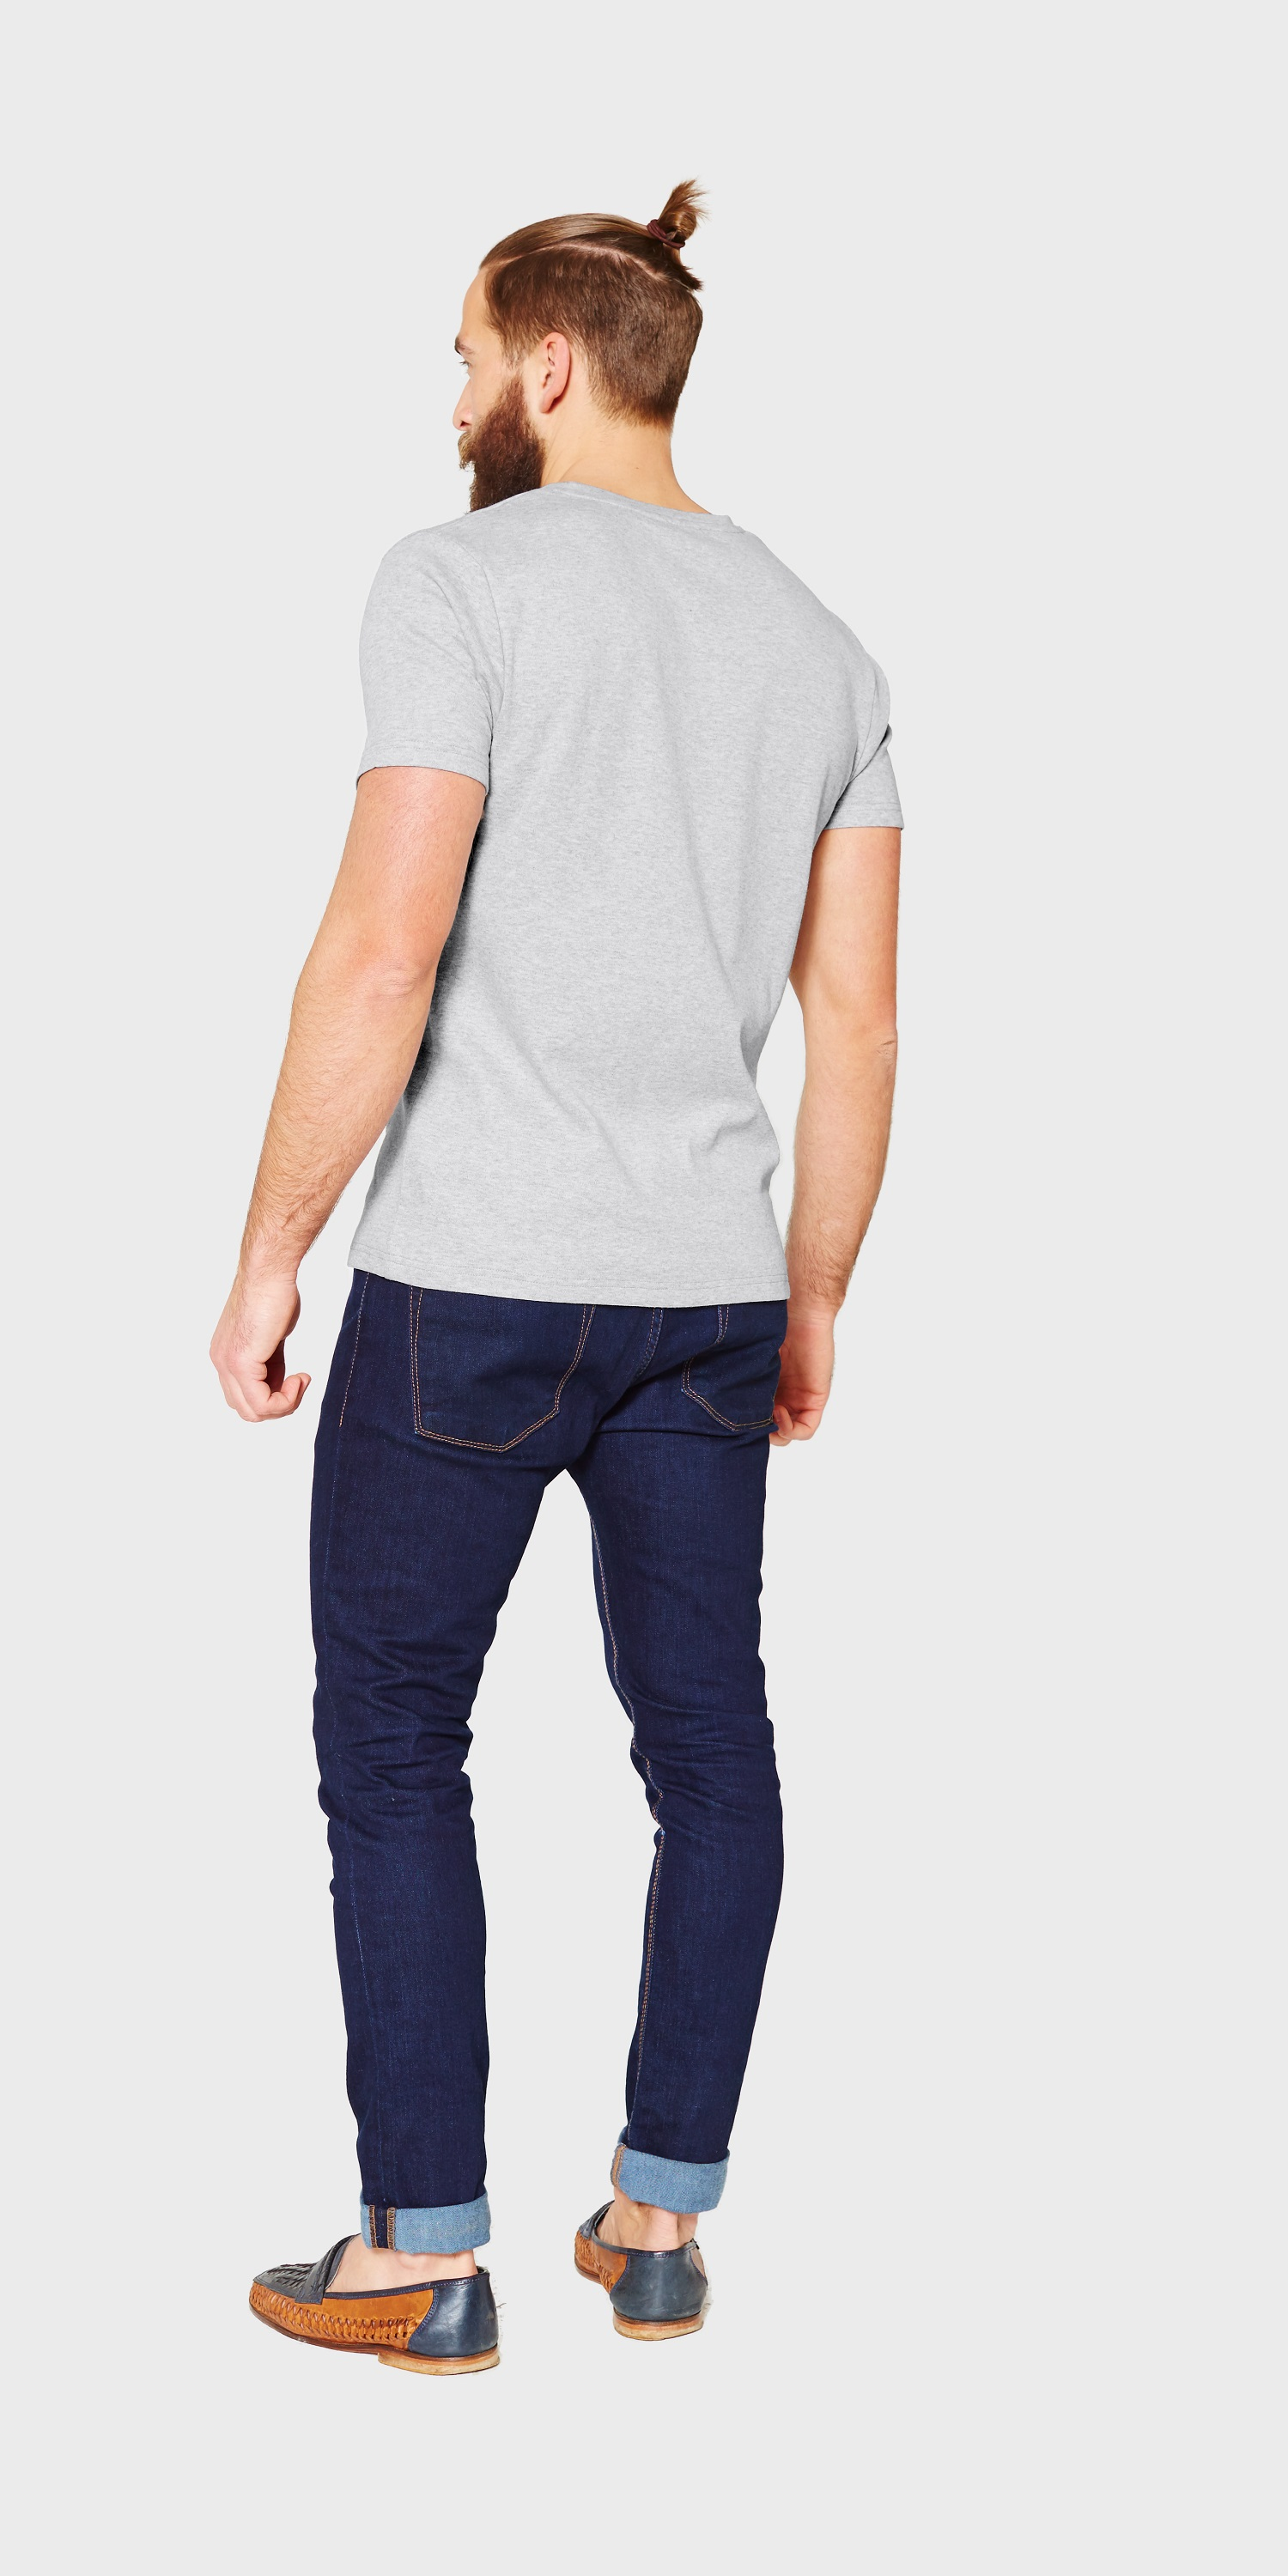 Mens-organic-cotton-grey-marl-round-neck-t-shirt-back-view